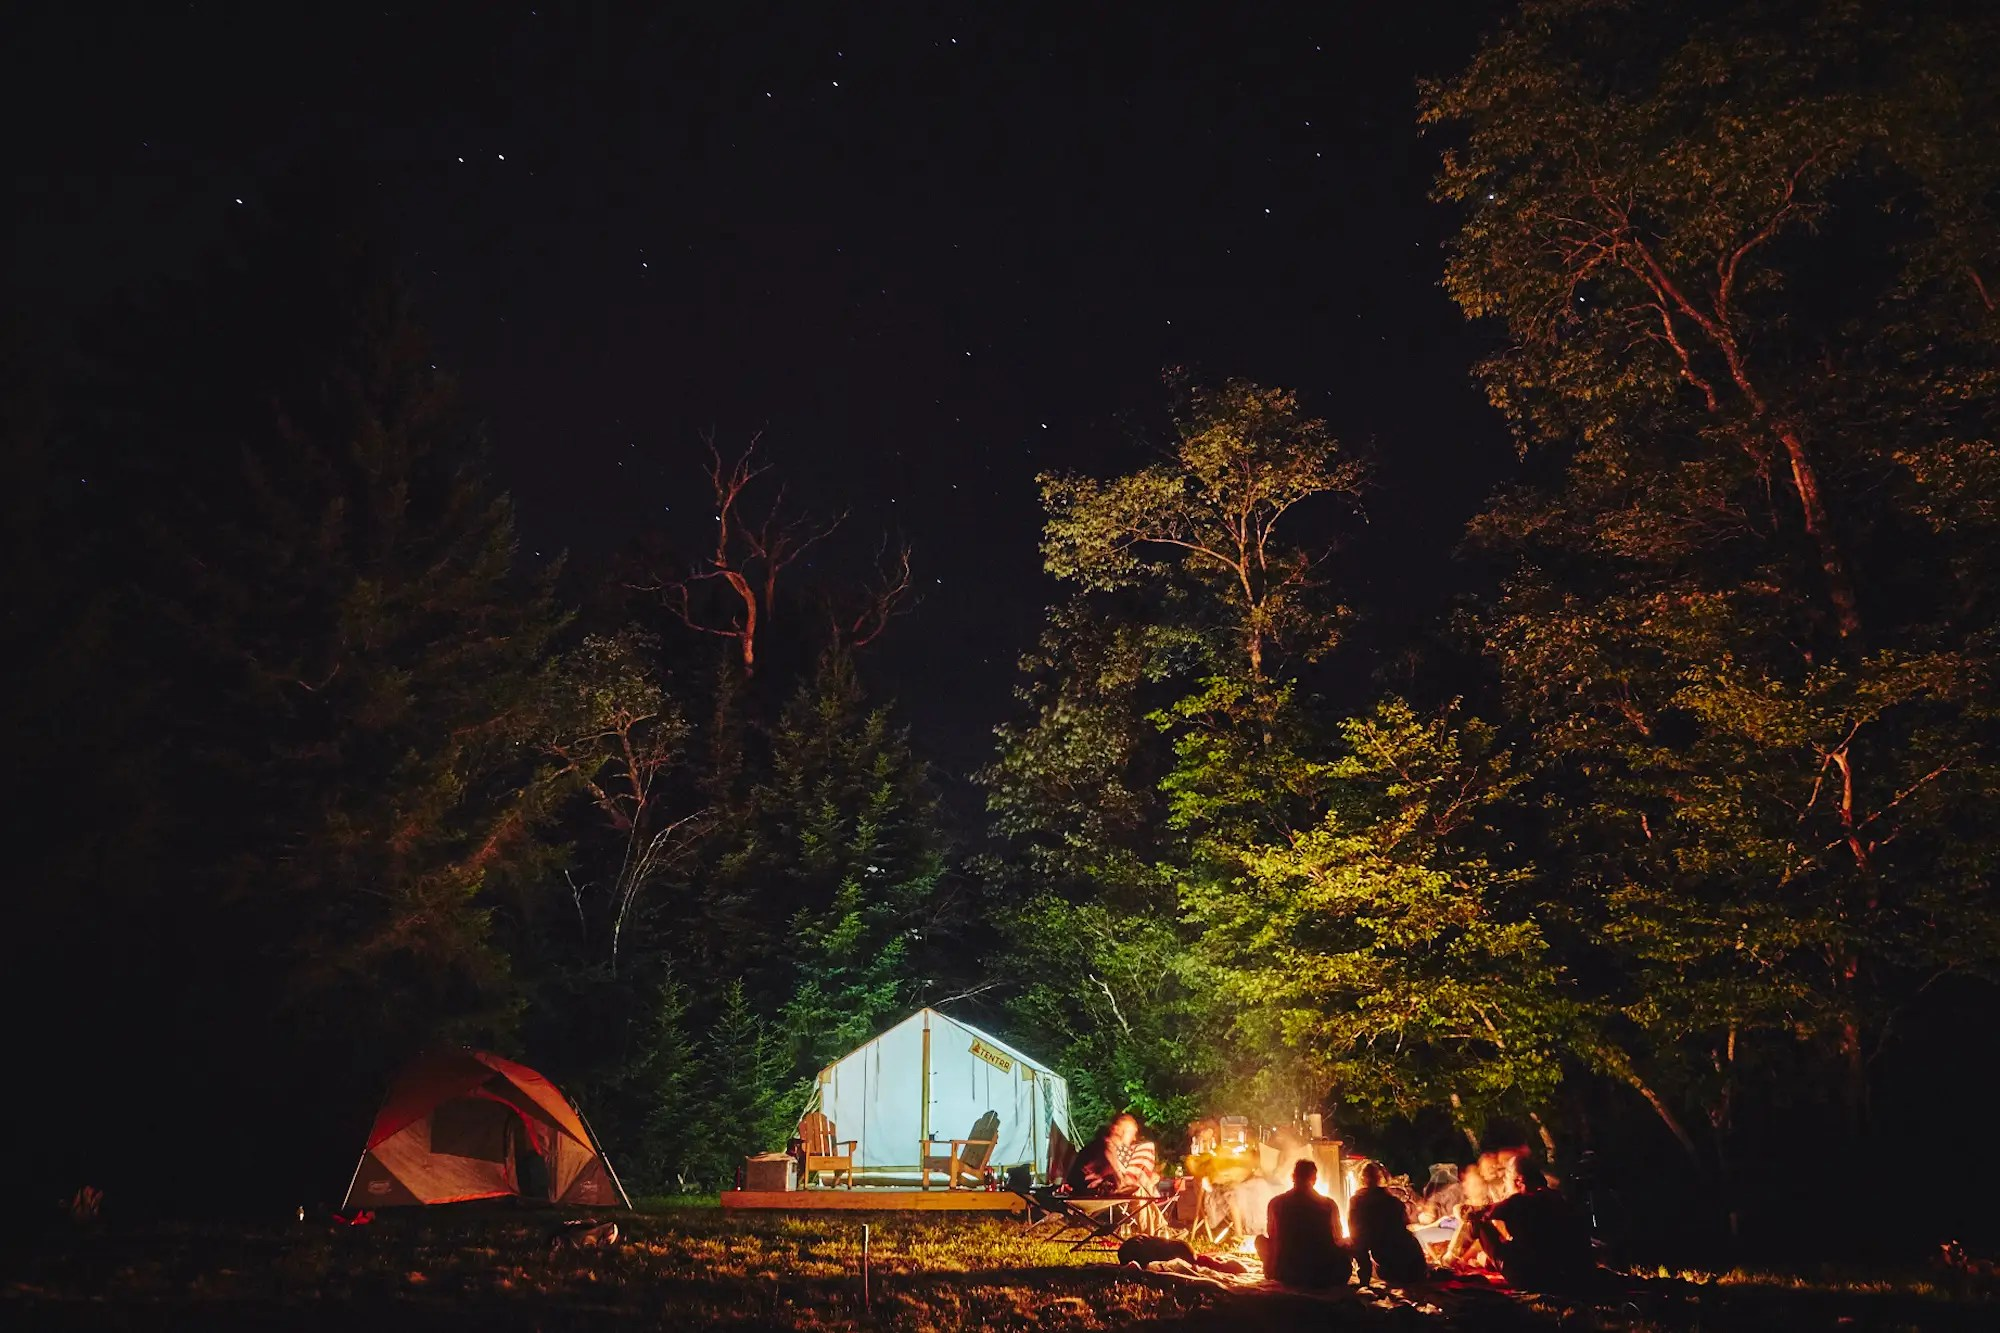 Tentrr has put up campsites at 50 locations in New York state — with another 150 sites in the works. They sit on privately owned land, where guests can relax and recharge in peace.